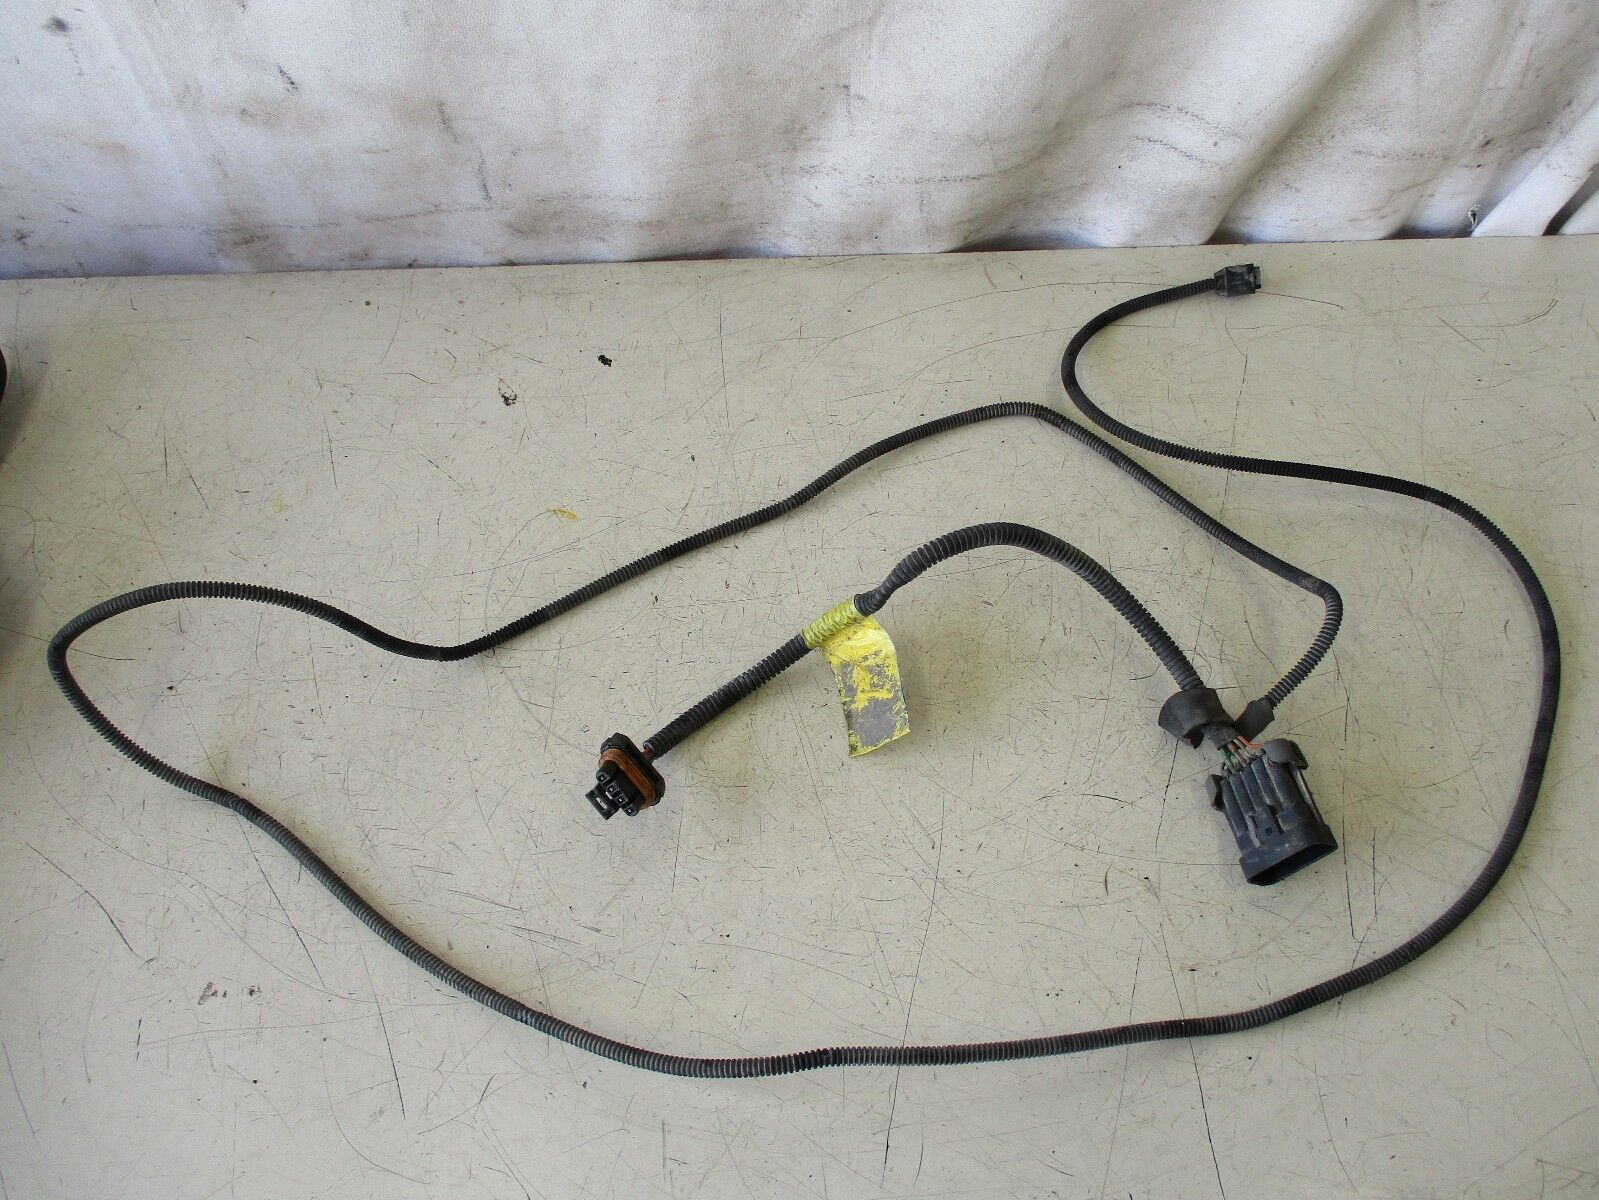 Used Mercedes Benz Accessories For Sale Page 3 1992 Mercedesbenz 400se Engine Wiring Harness Genuine 2001 Ml320 Oem 32l 6 Cyl Fuel Tank Wire